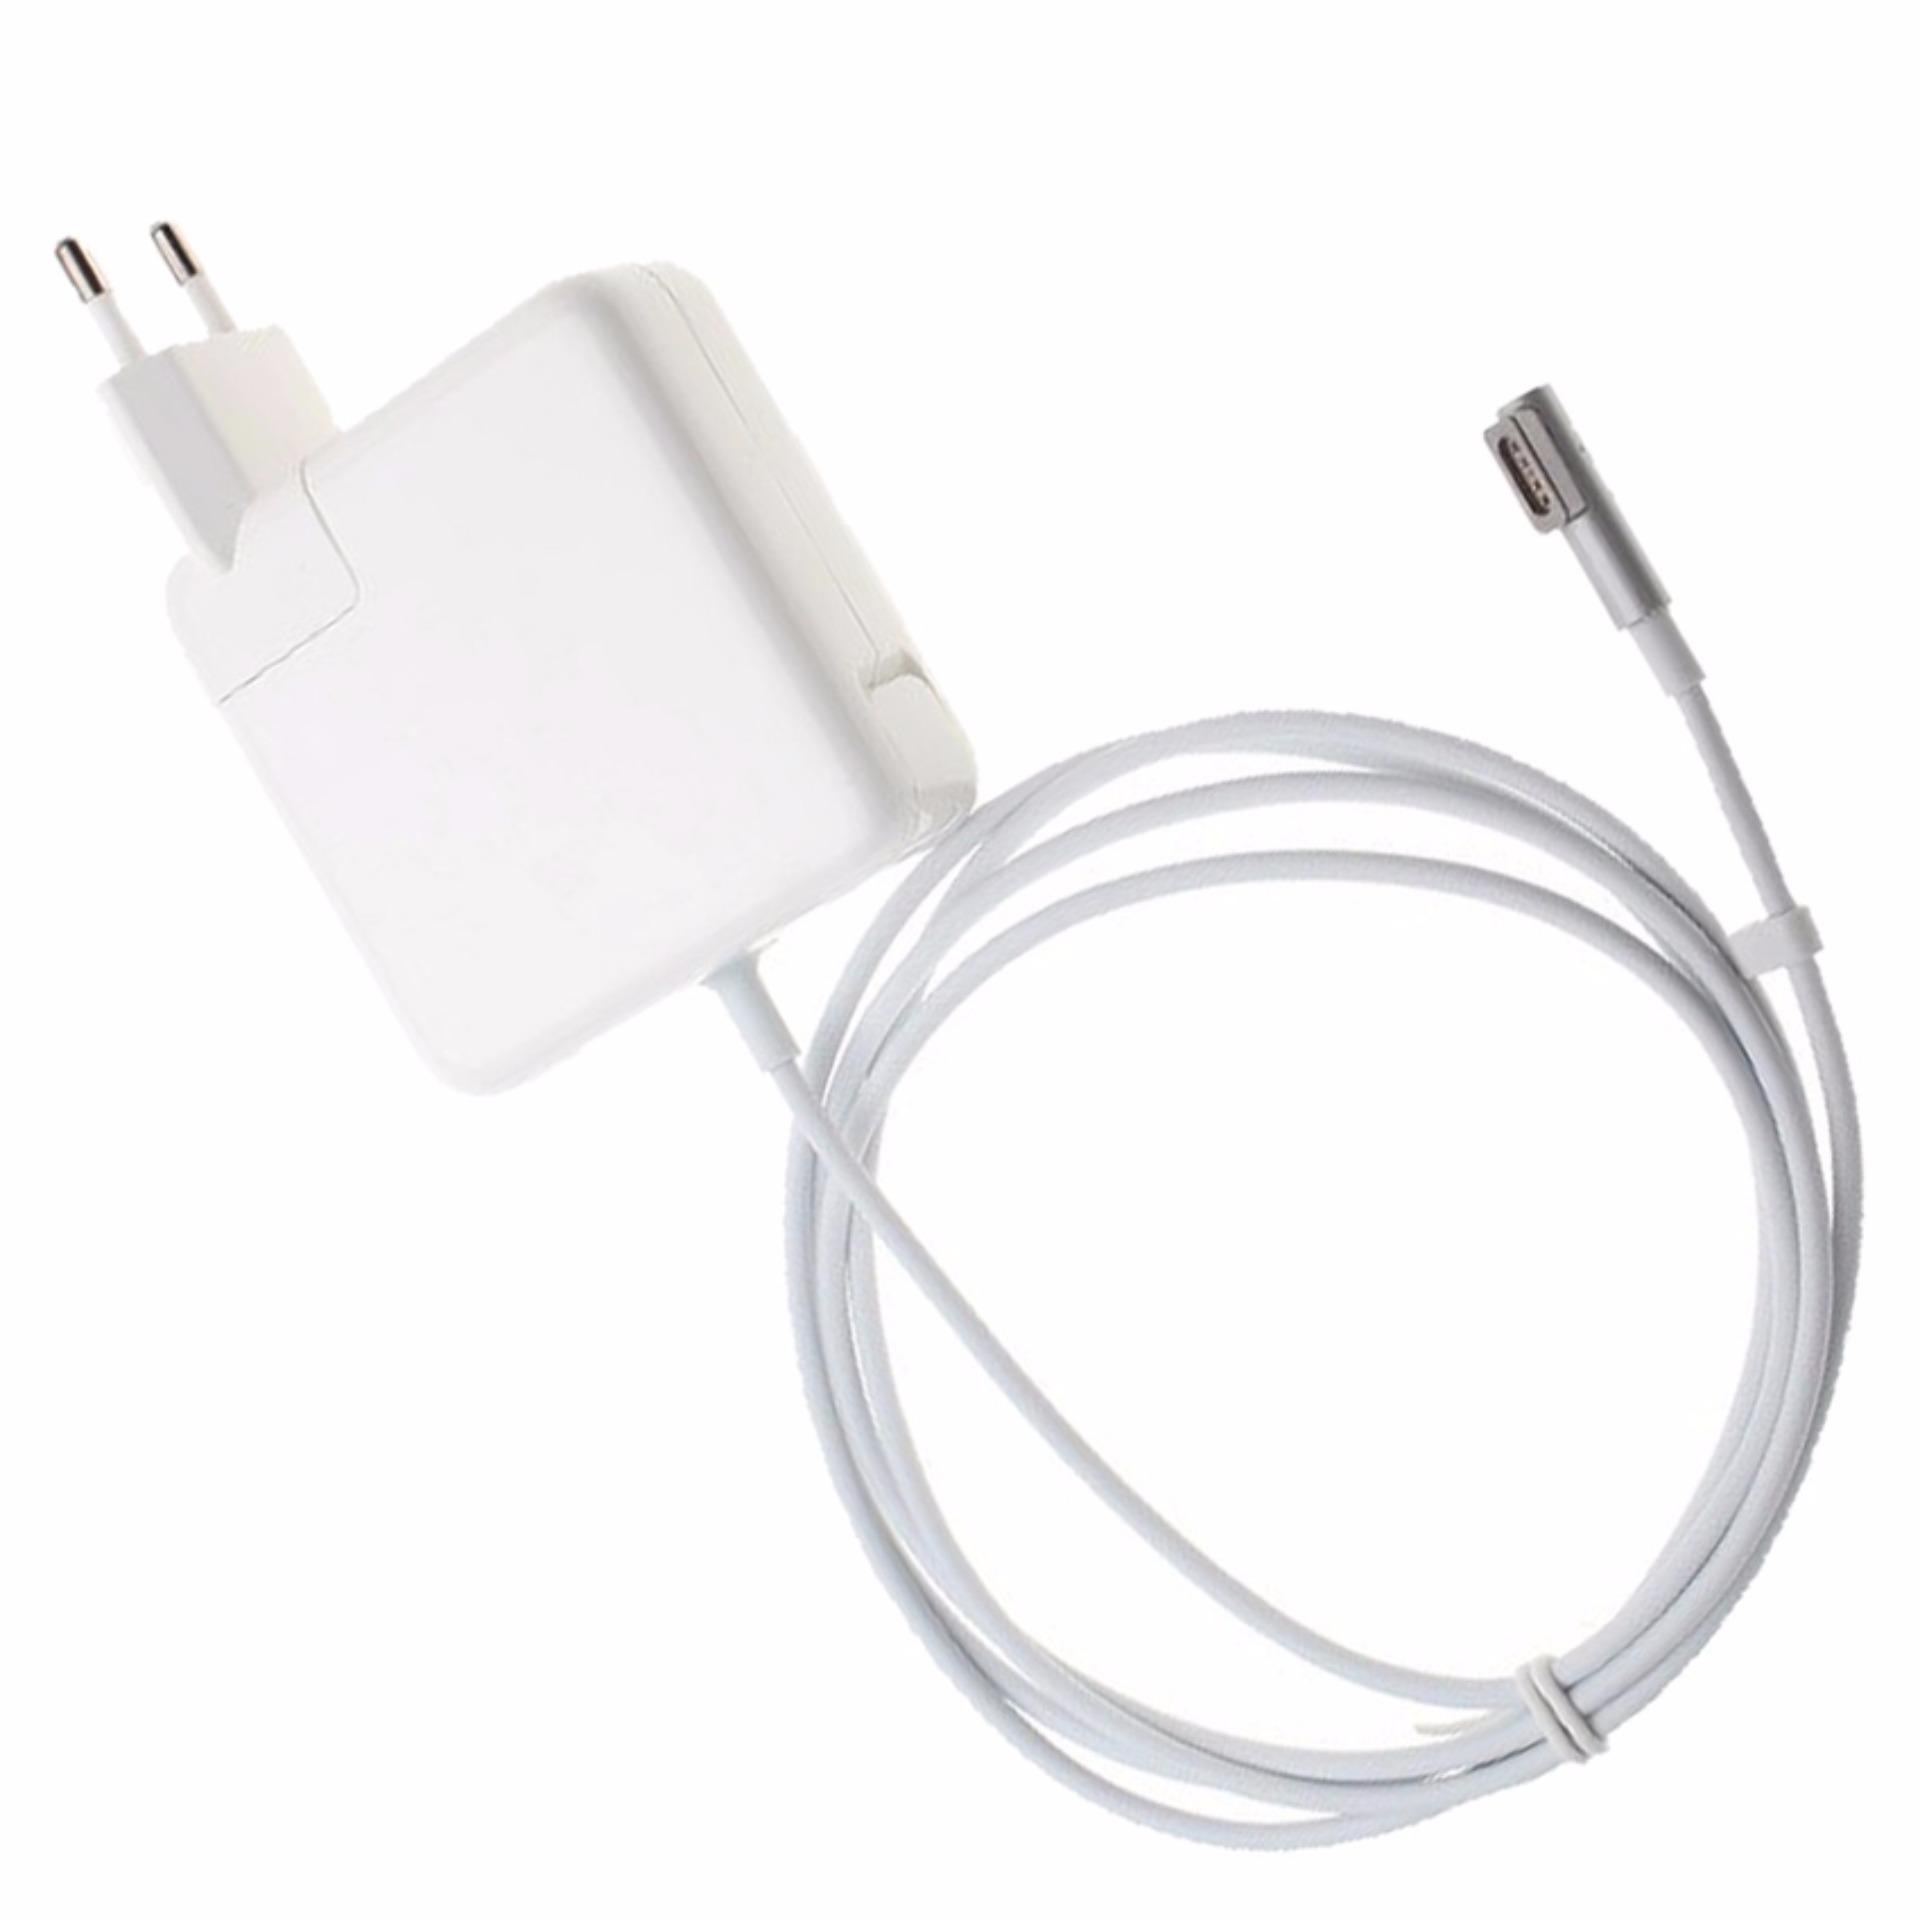 Apple Original 60w Magsafe 1 Power Adapter Adaptor Charger Macbook 85w A1343 Pro 15 And 13